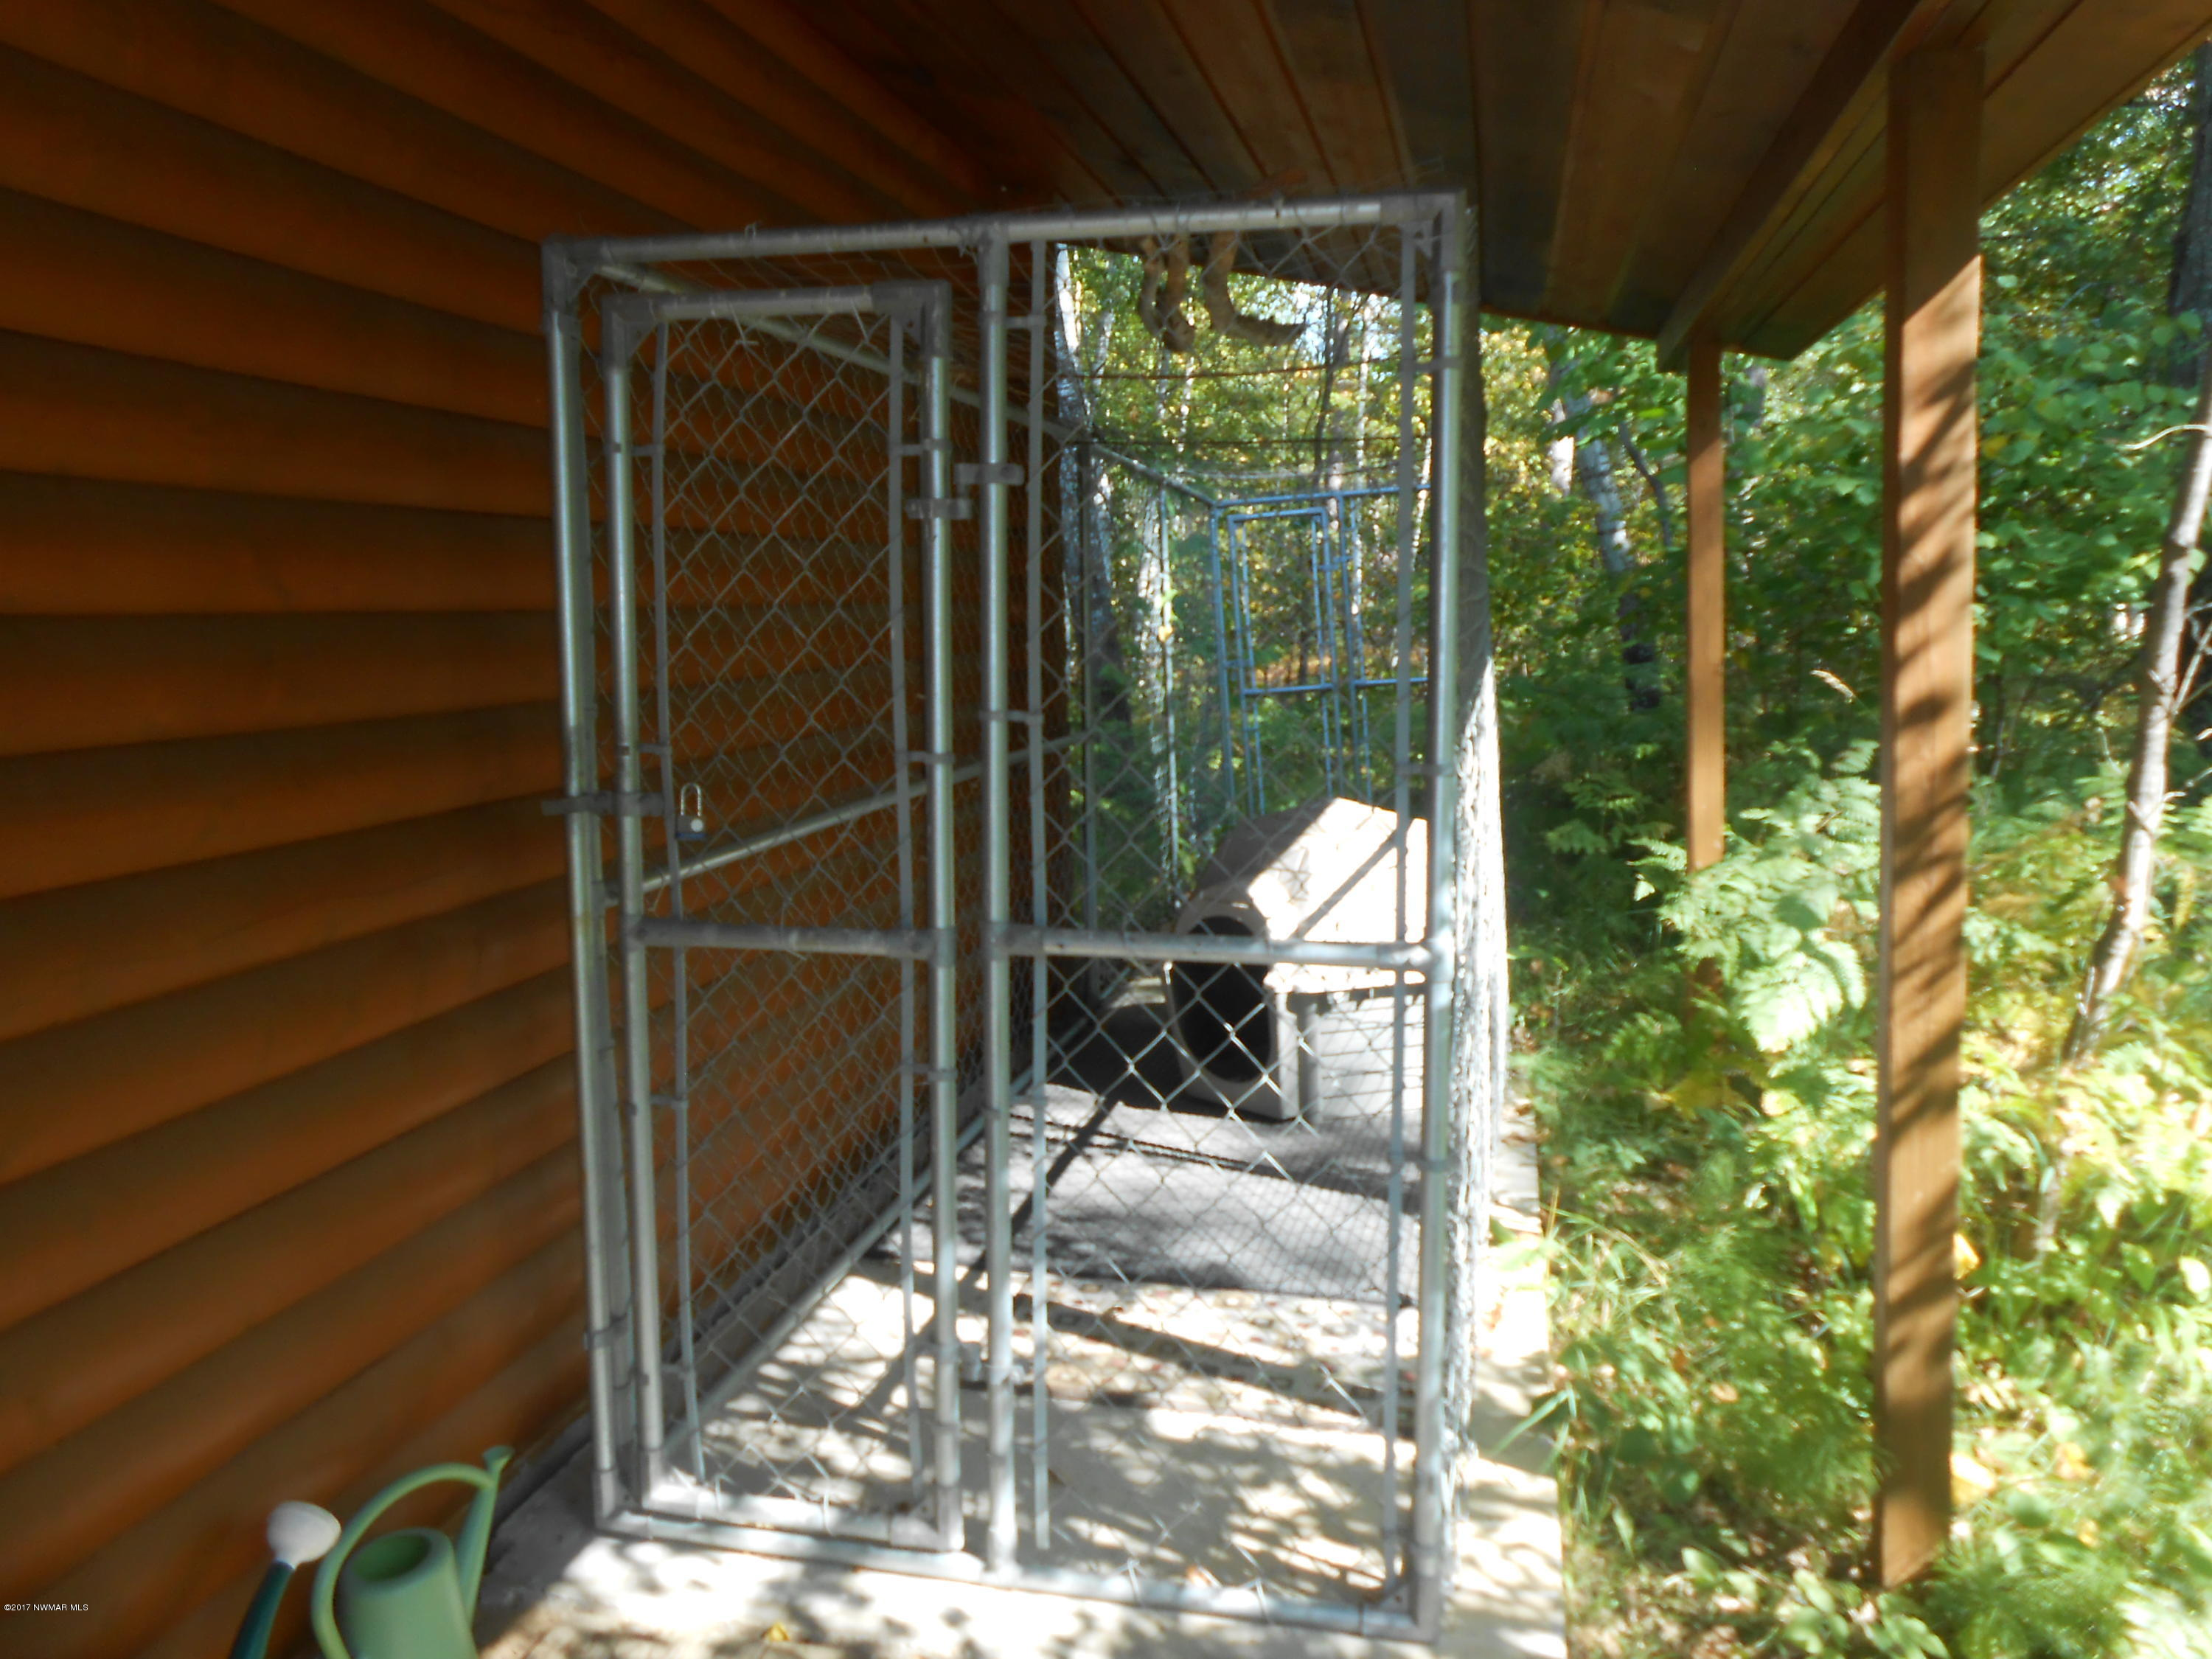 Dog kennel stays with the home